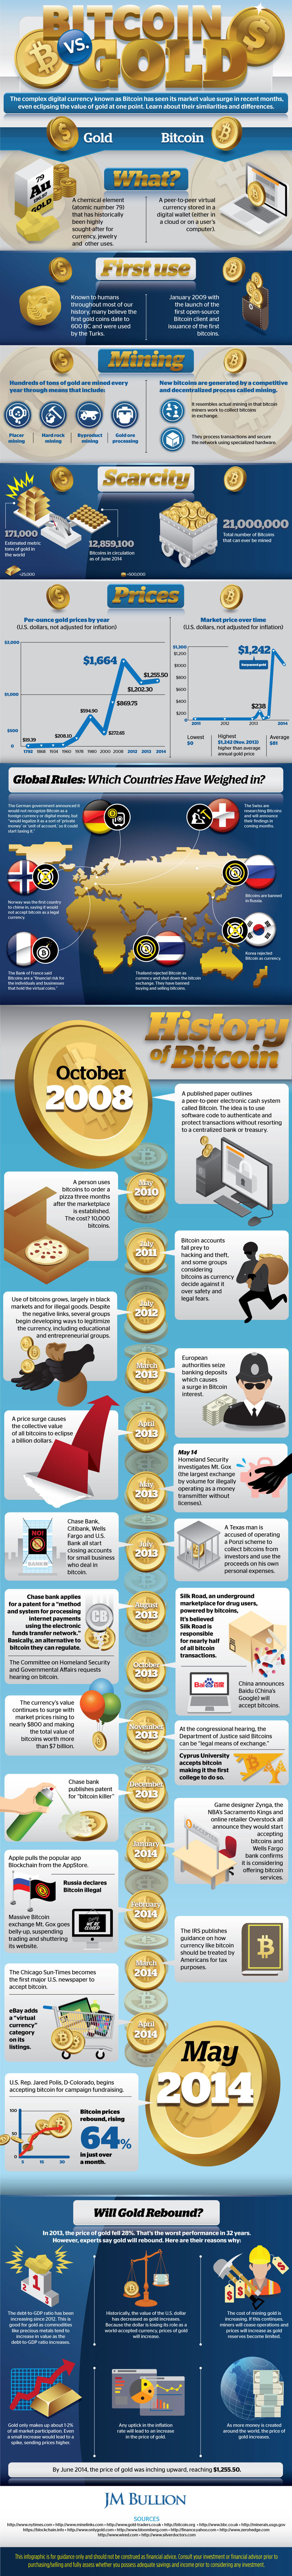 Bitcoin vs Gold Infographic